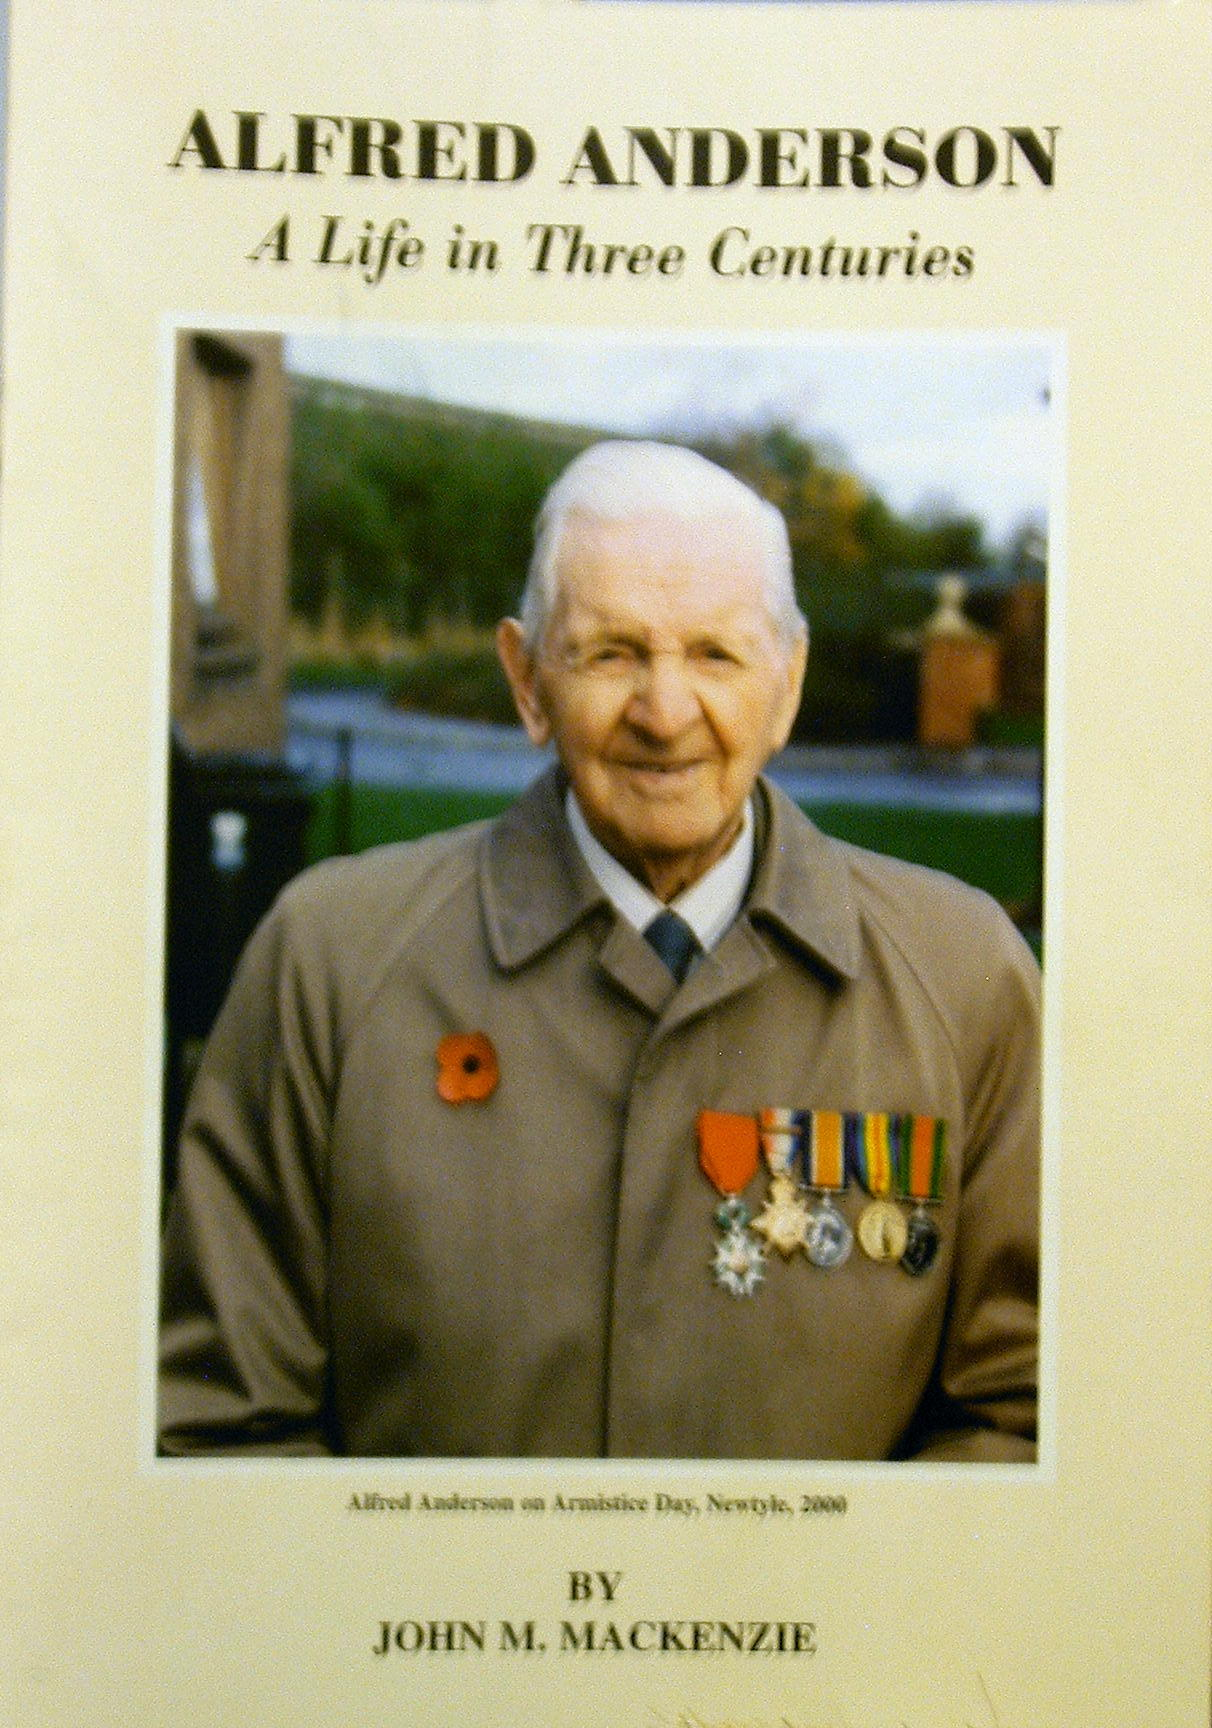 A biography by Professor John M. MacKenzie of Scotland's and Alyth's oldest man Alfred Anderson who sadly passed away on 21st November 2005 aged 109 years.